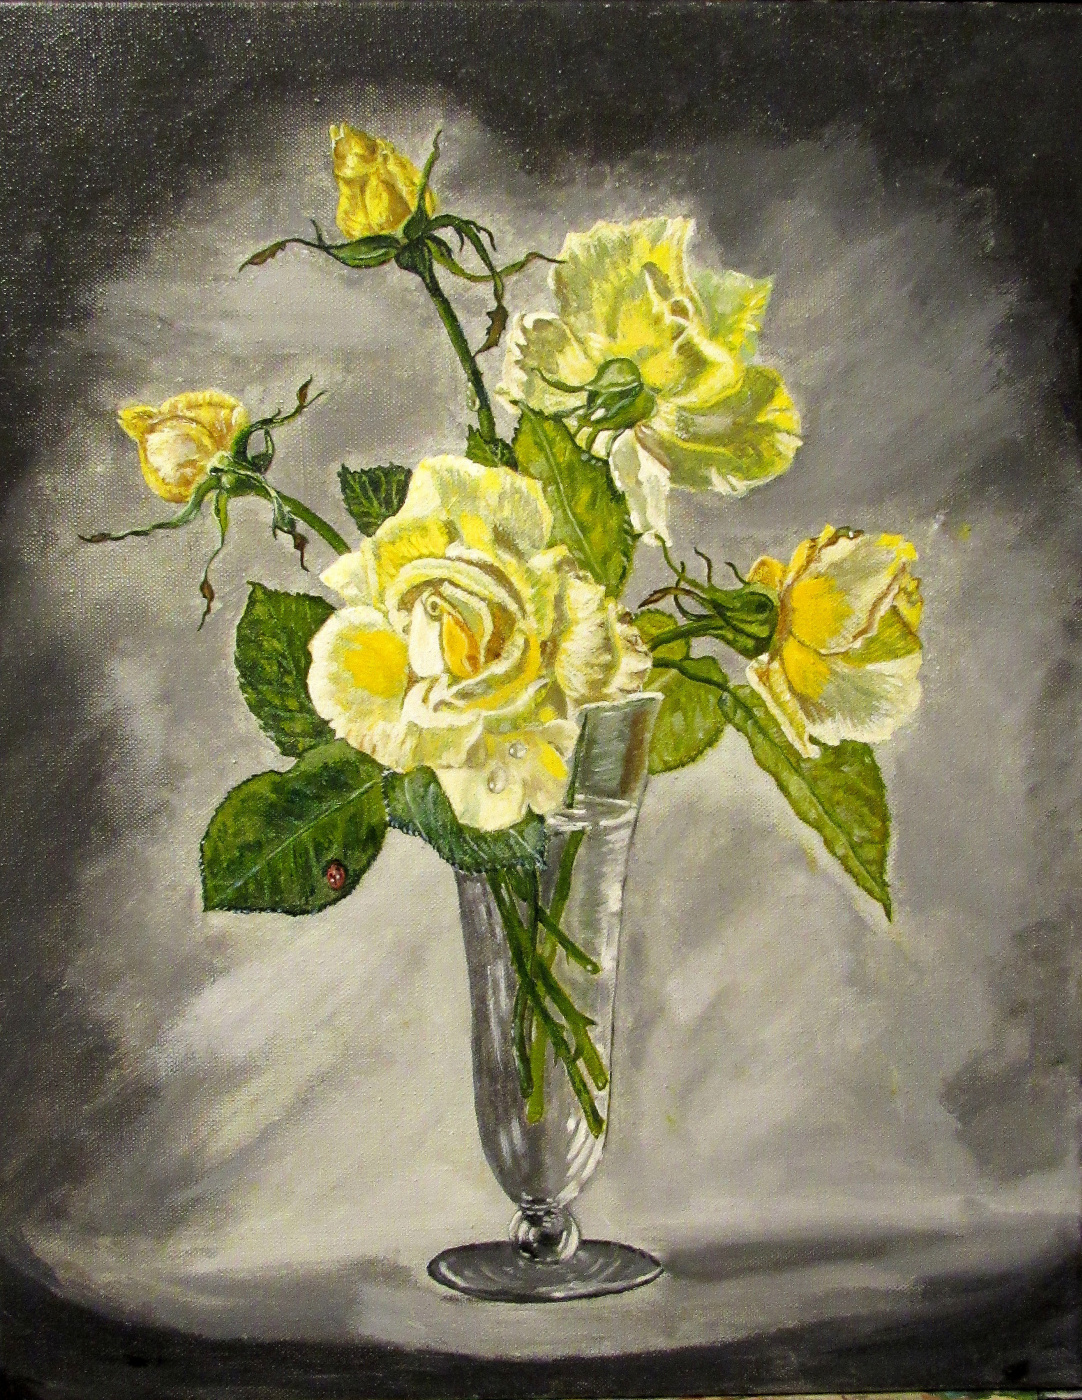 Artashes Vladimirovich Badalyan. Cecil Kennedy. Yellow roses - xm - 50x40 (multi-layered copy)